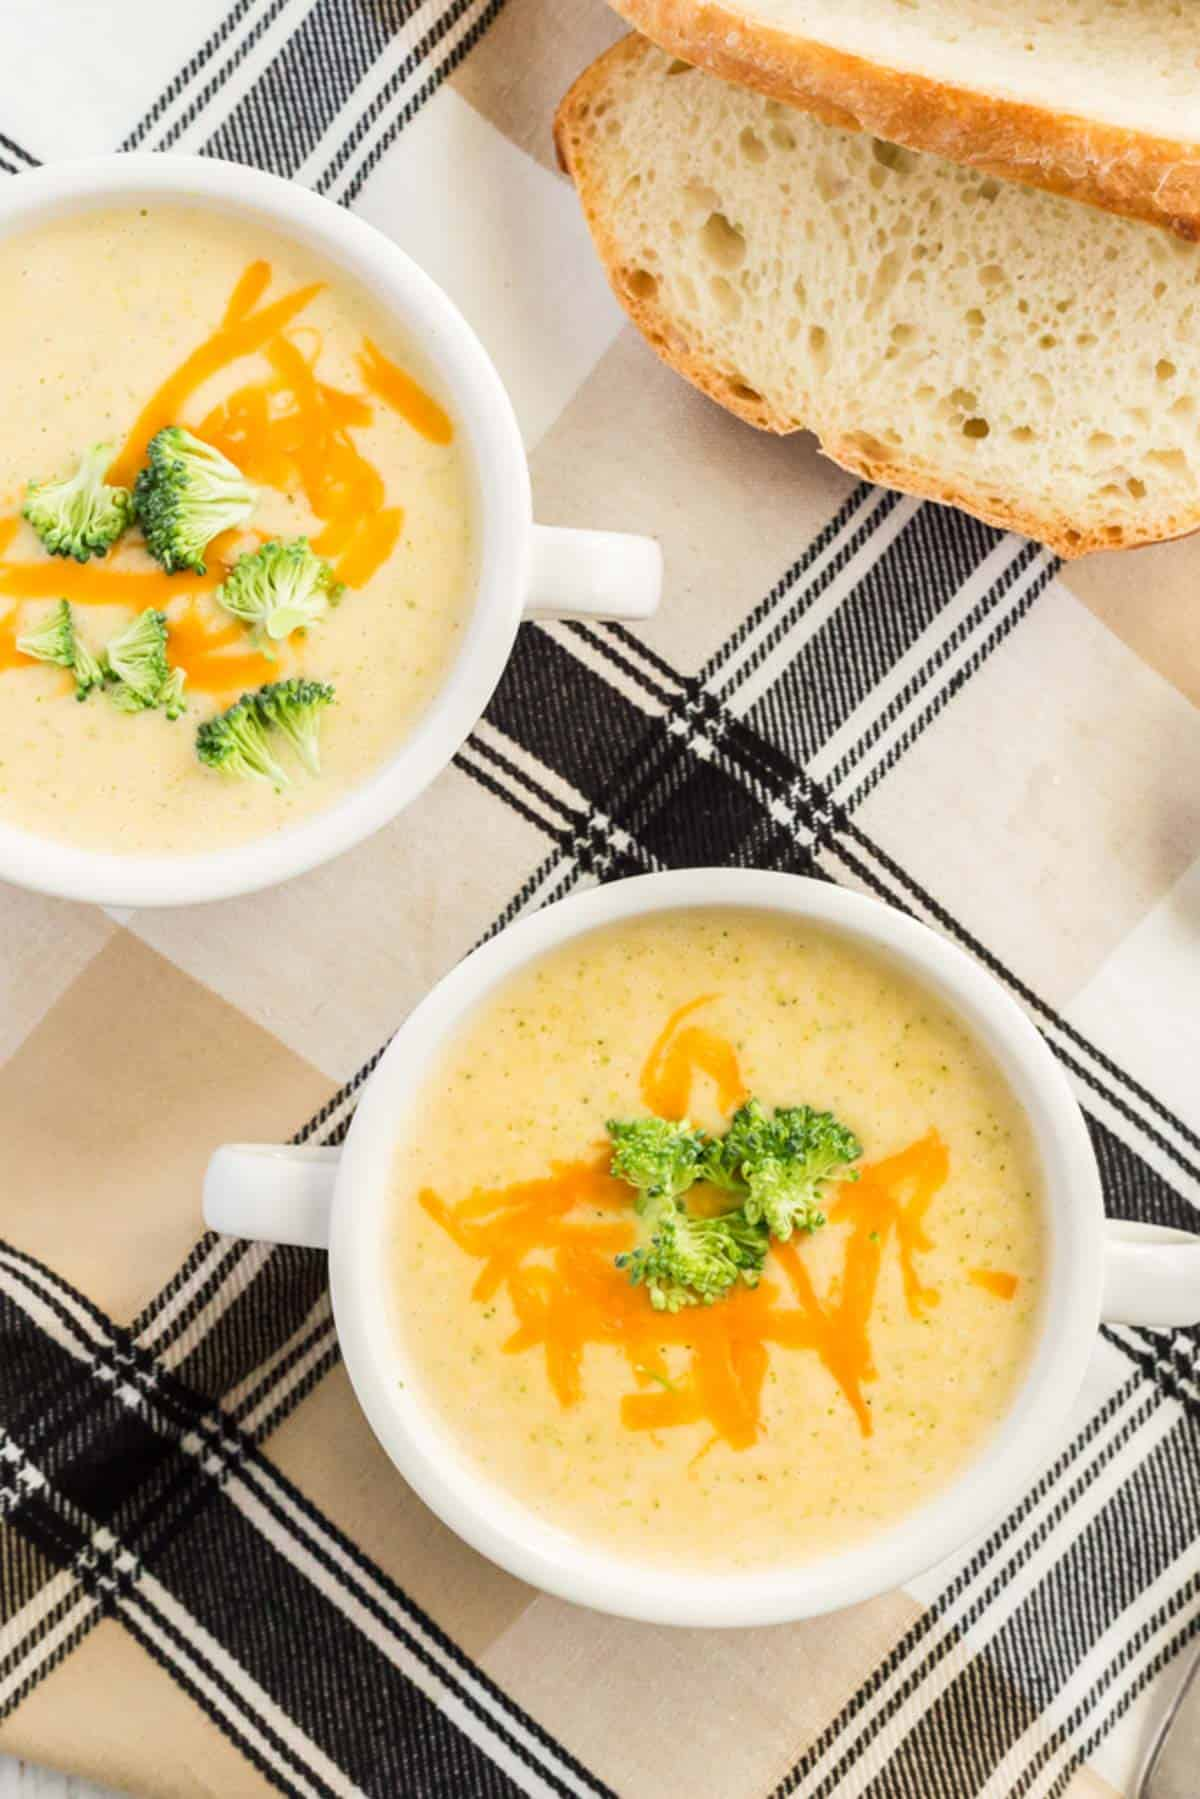 2 bowls of broccoli cheddar soup with bread